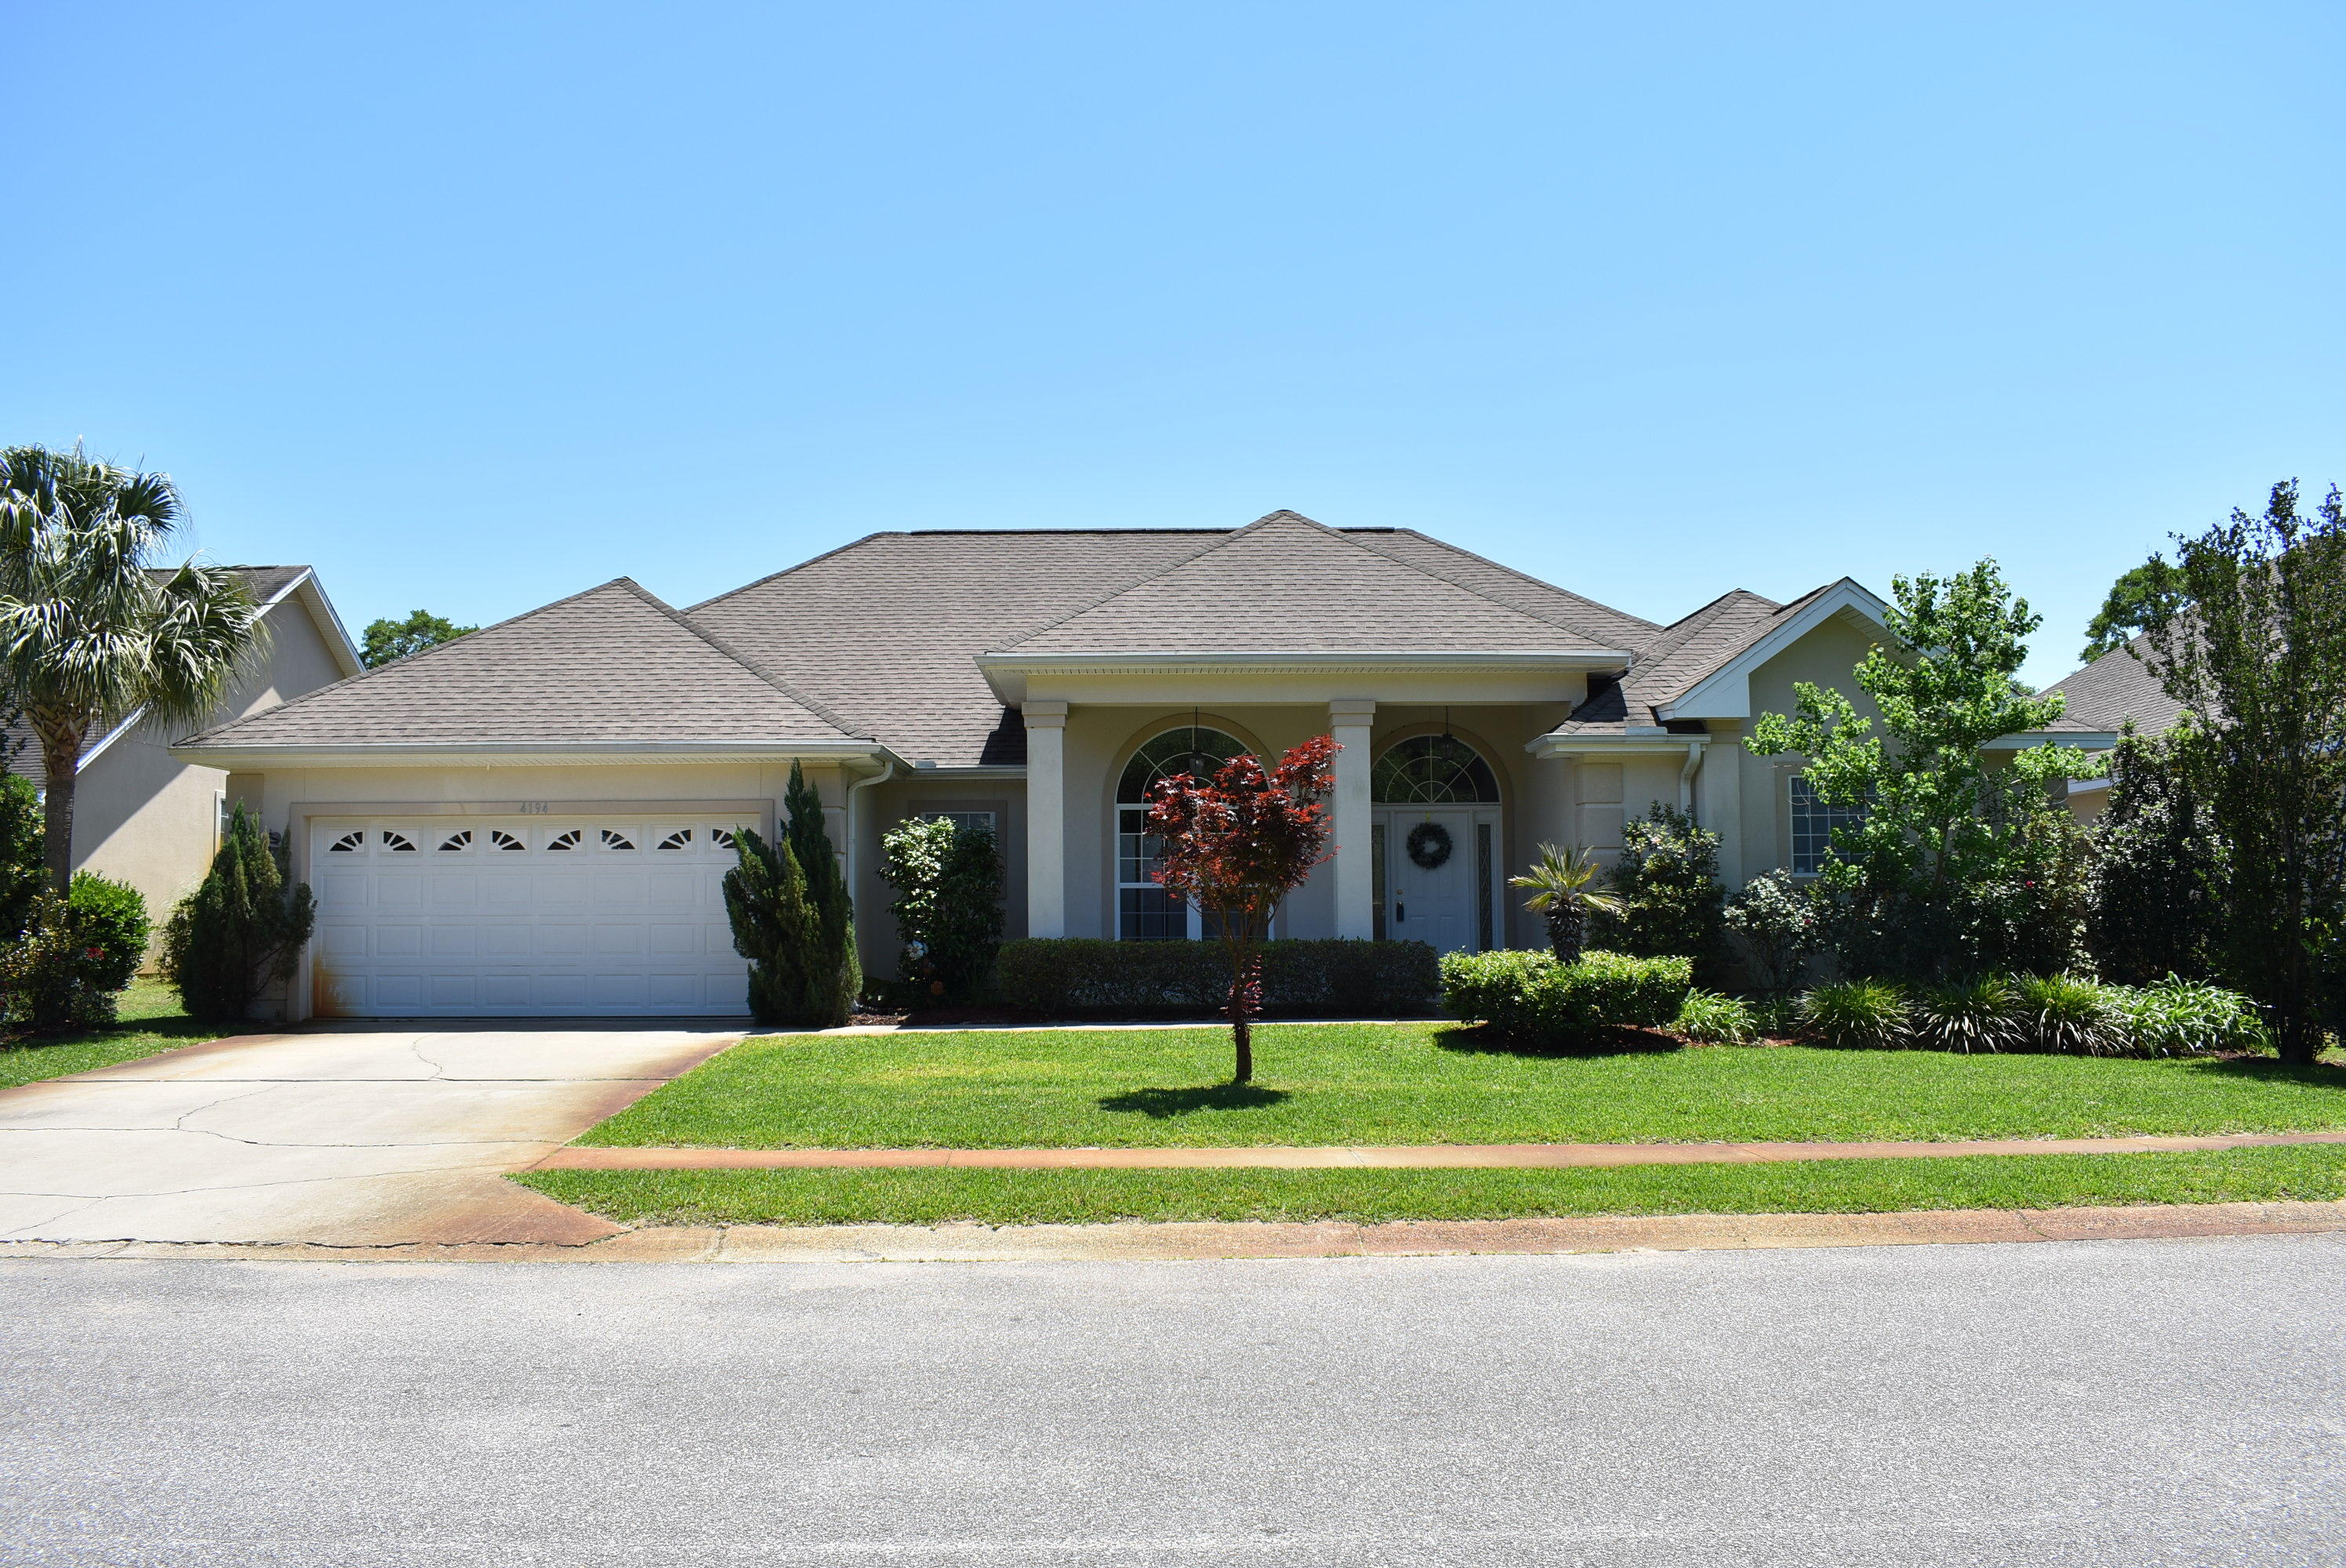 4194  Mossy Cove Court, Niceville, Florida